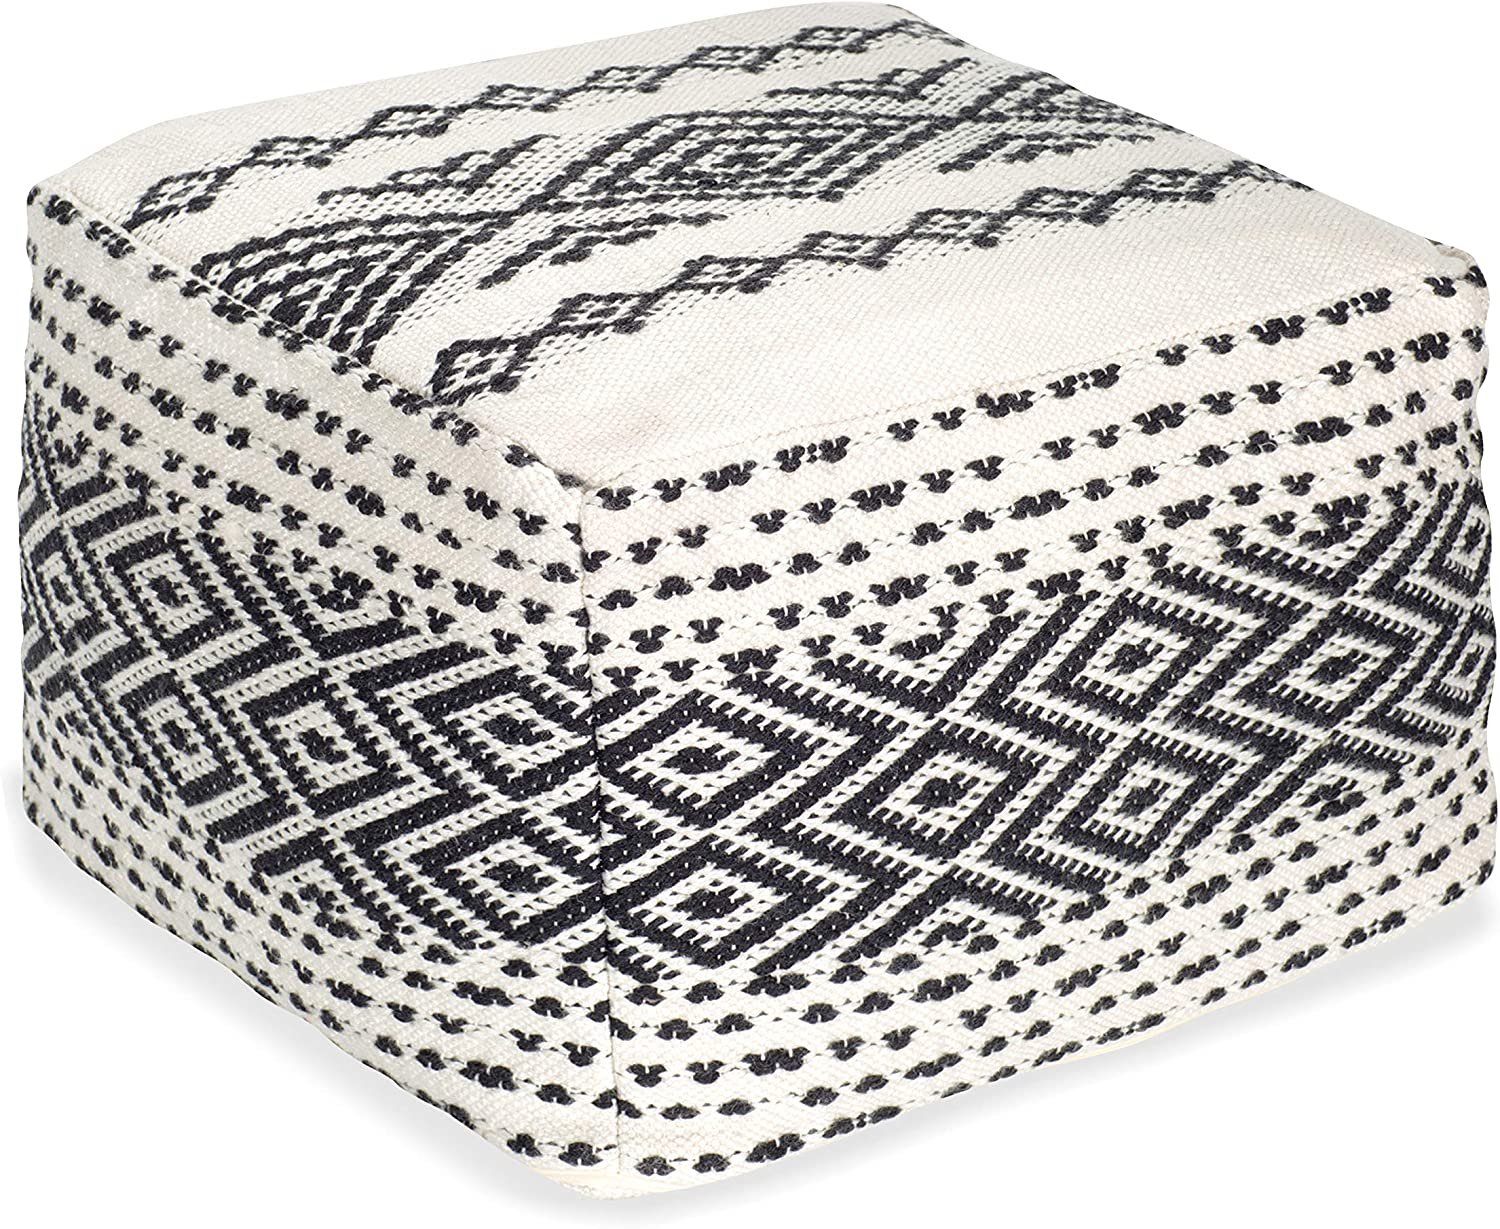 Poly and Bark Casbah Pouf